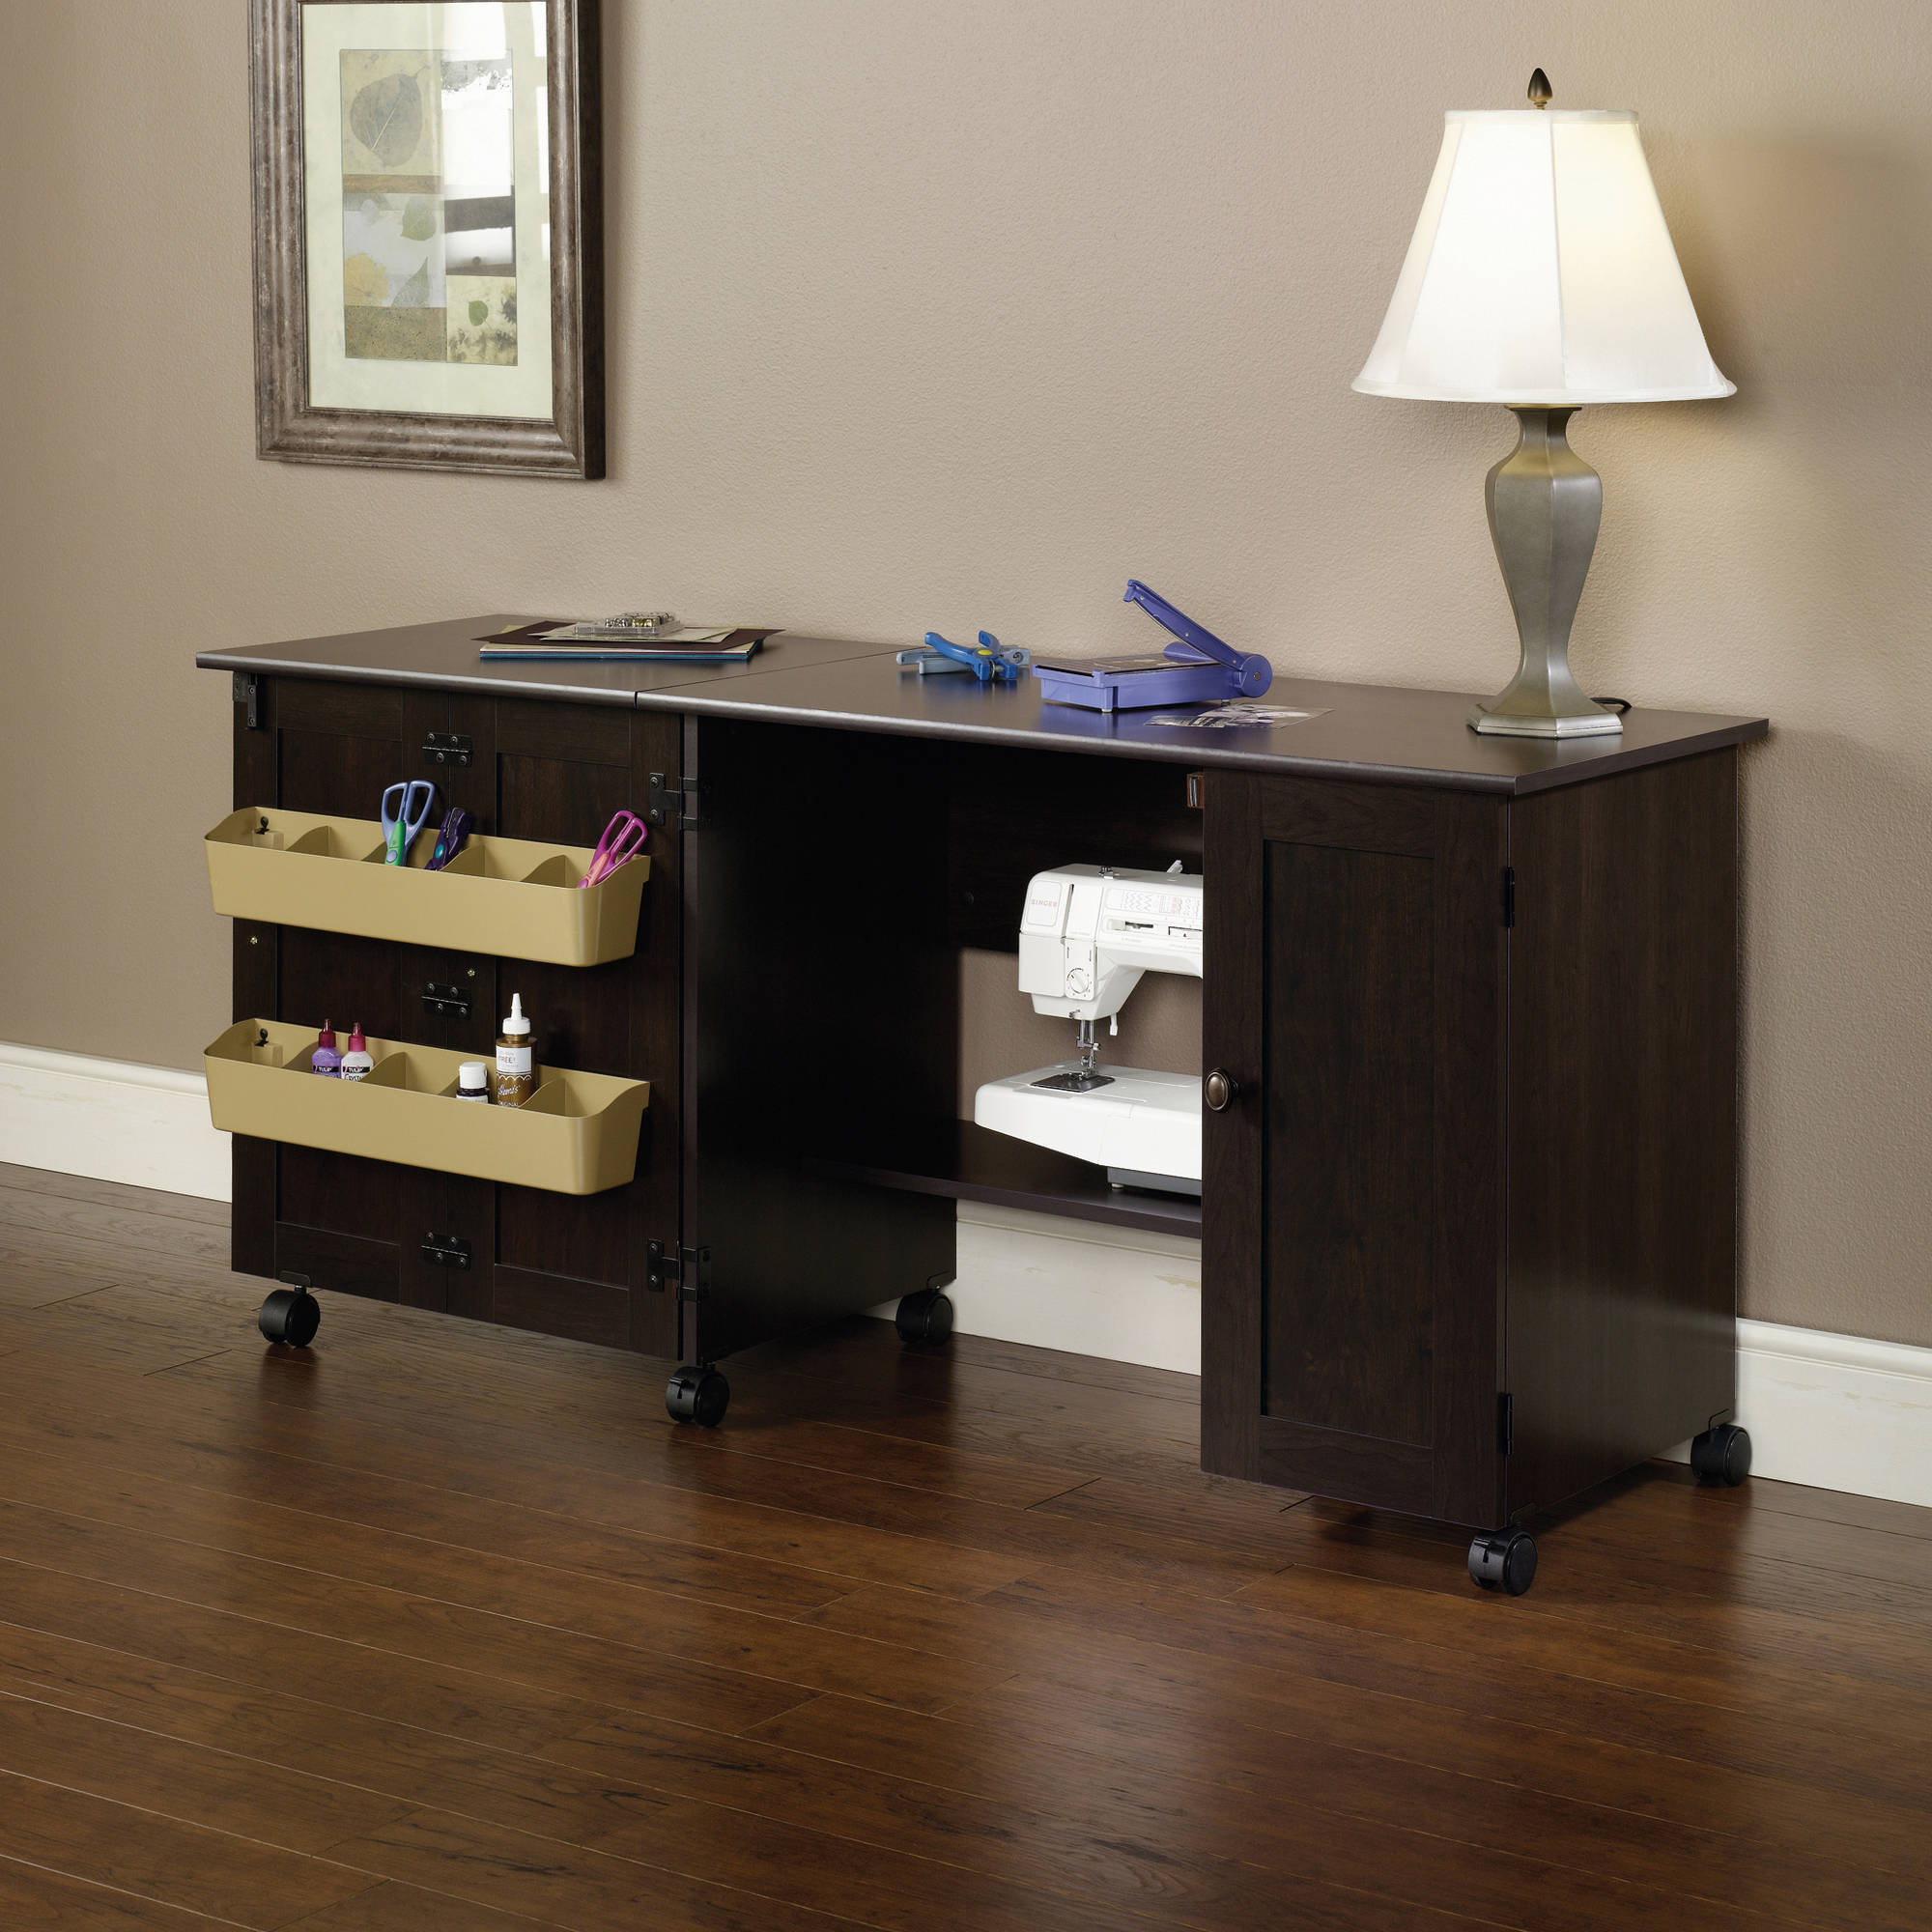 Sauder Sewing And Craft Table, Multiple Finishes Image 2 Of 3